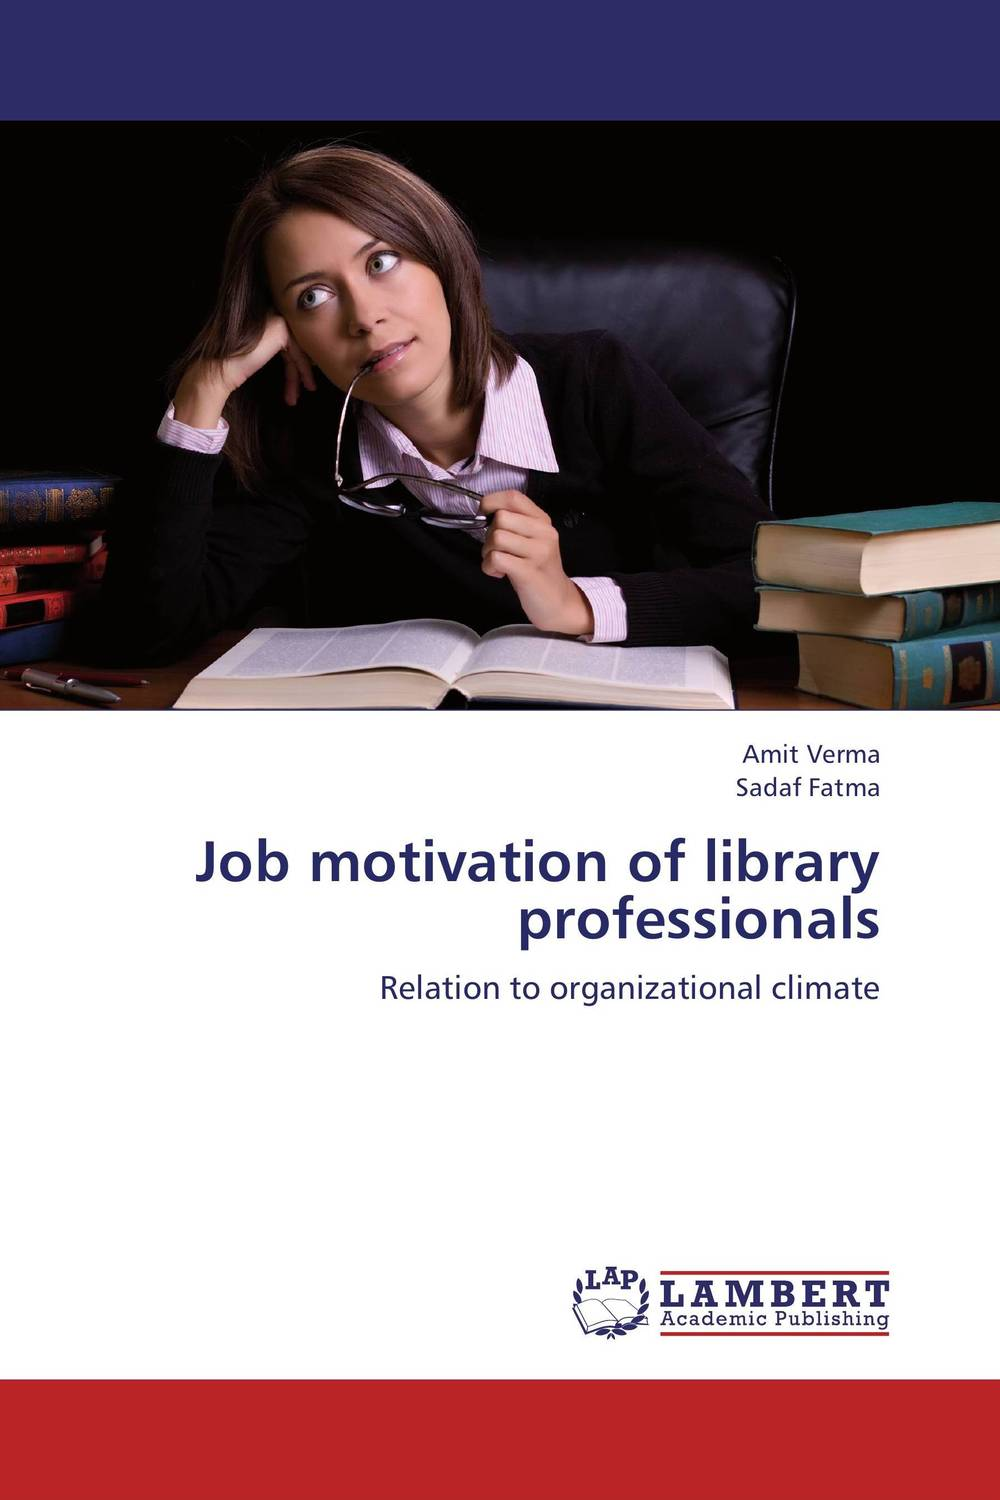 Job motivation of library professionals